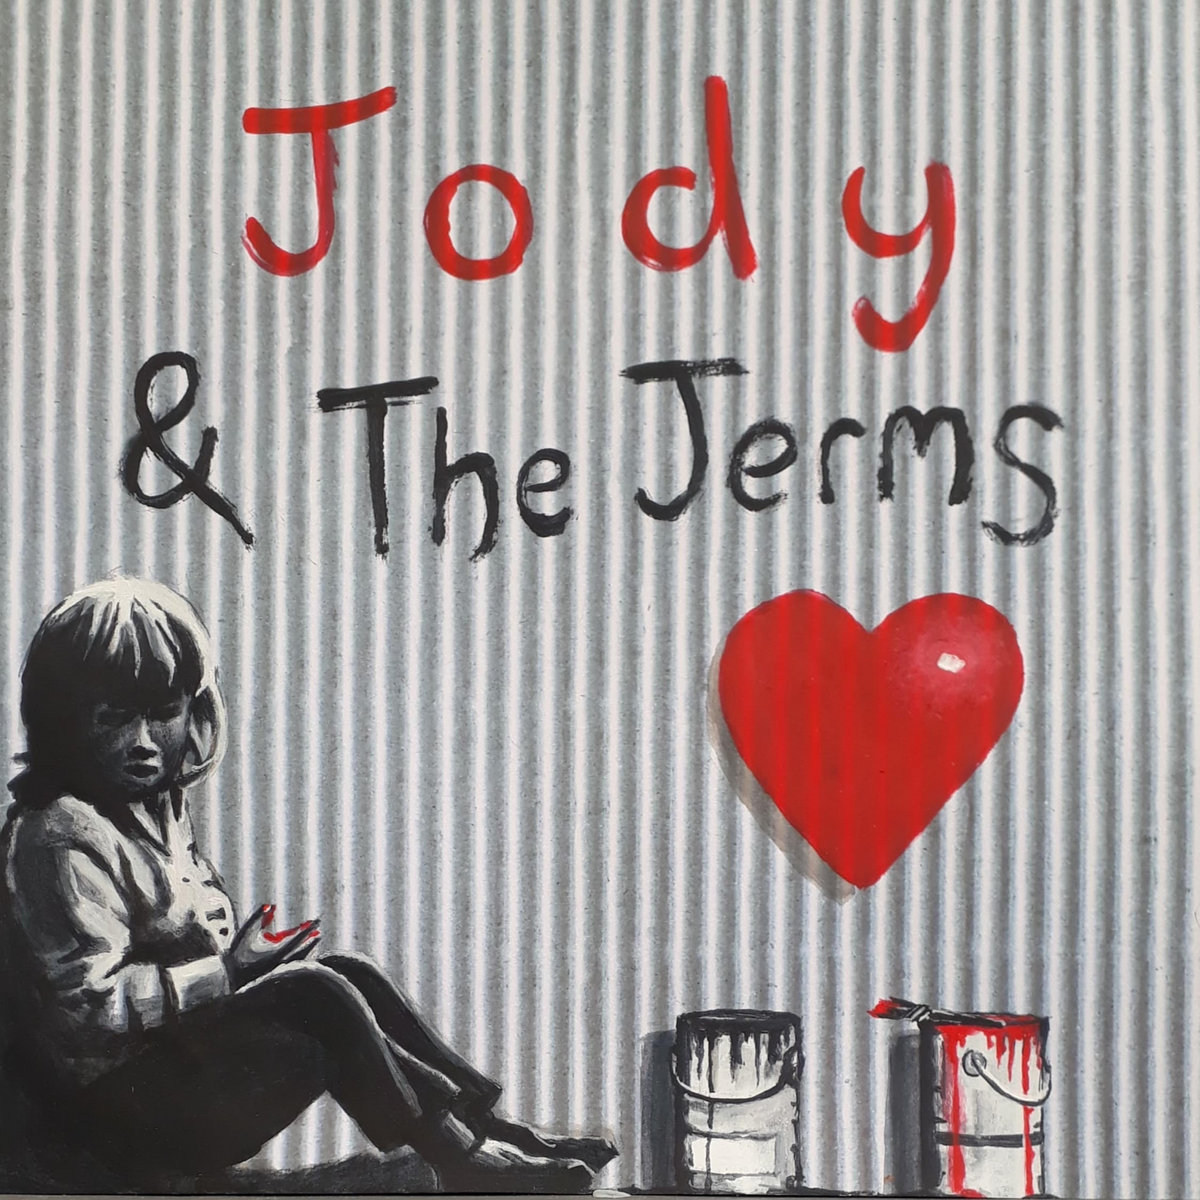 Jody and The Jerms - Deeper